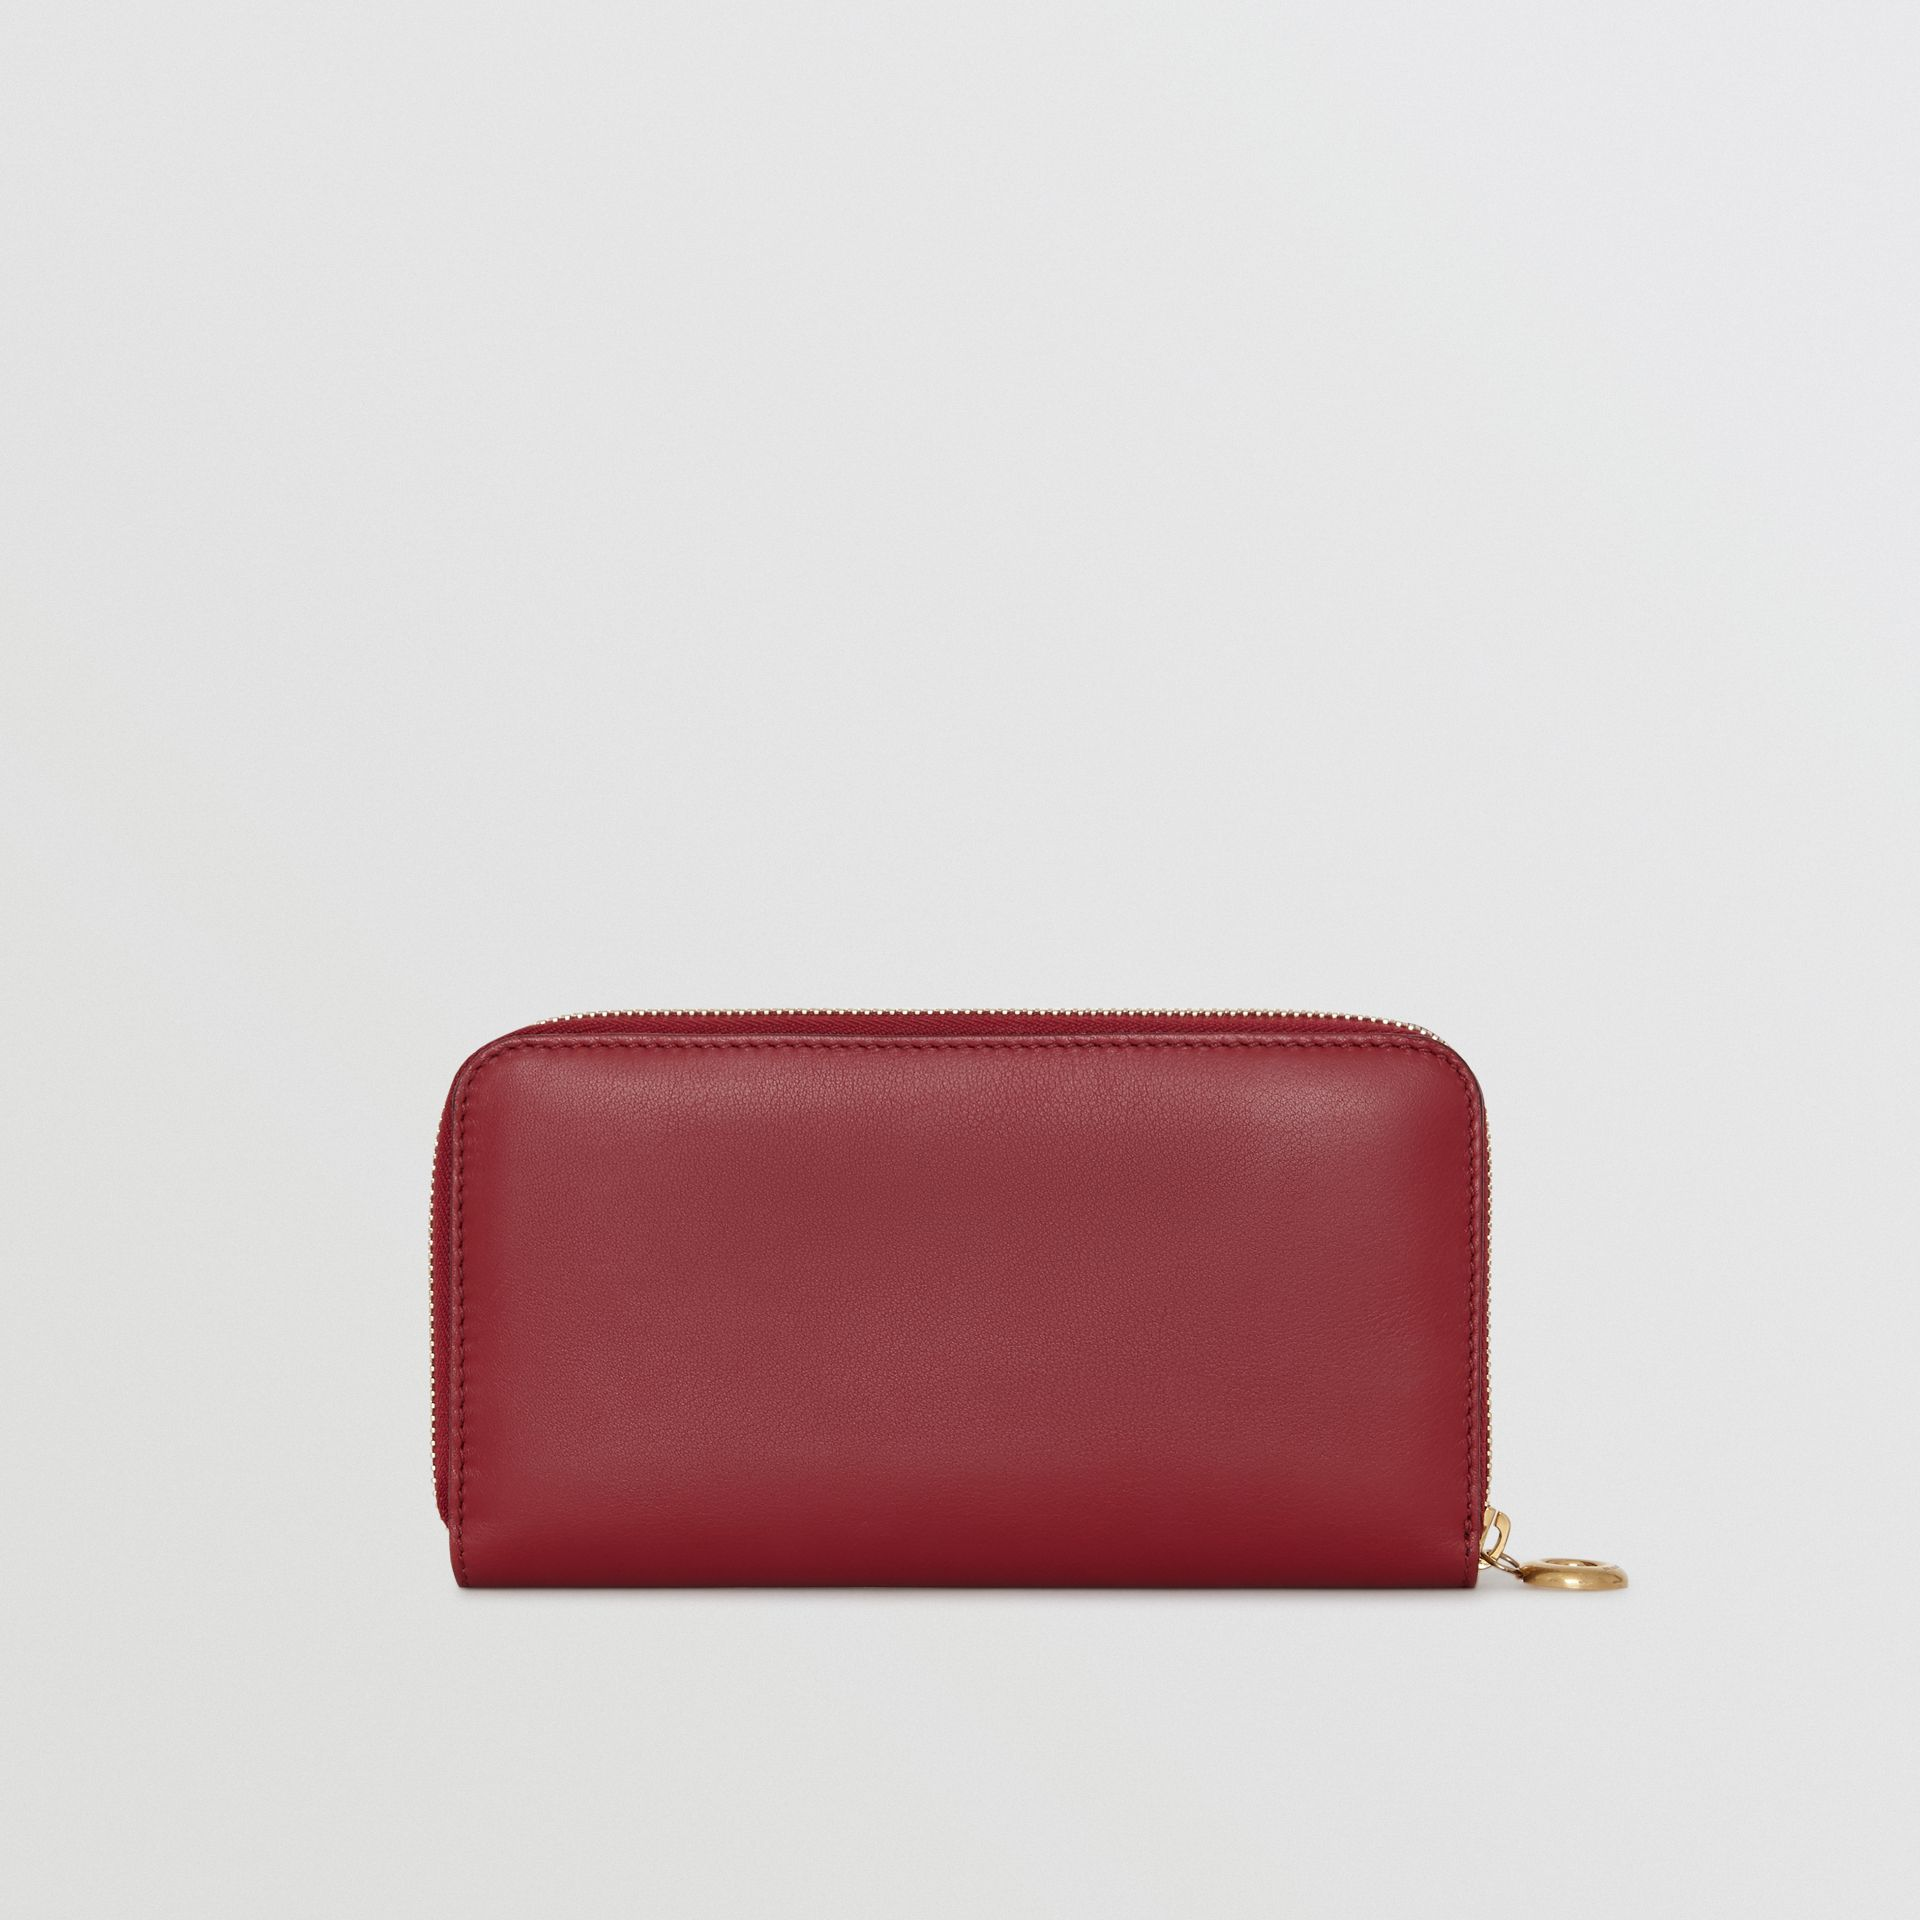 Embossed Crest Two-tone Leather Ziparound Wallet in Crimson - Women | Burberry Canada - gallery image 4